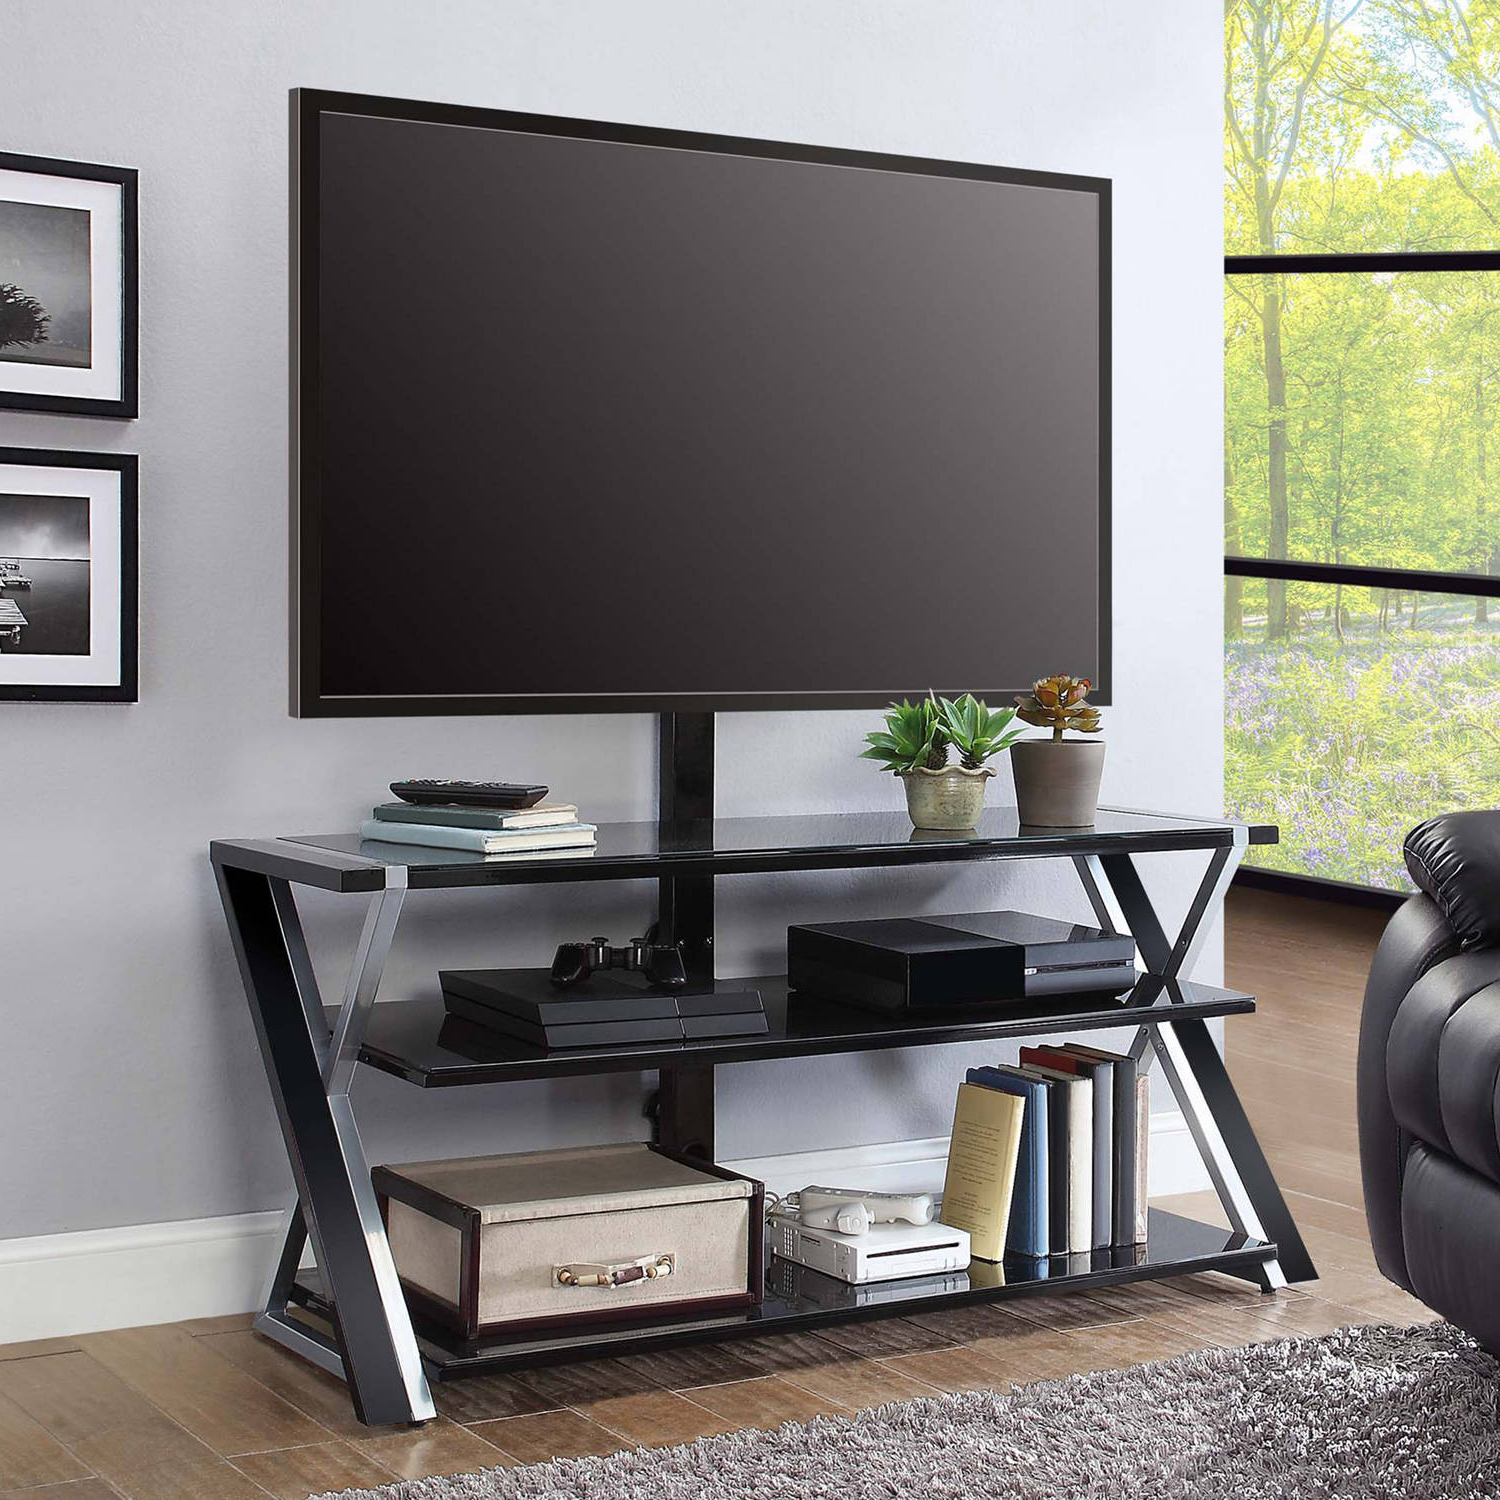 "Whalen Xavier 3 In 1 Tv Stand For Tvs Up To 70"", With 3 Display In Walton Grey 60 Inch Tv Stands (View 20 of 20)"